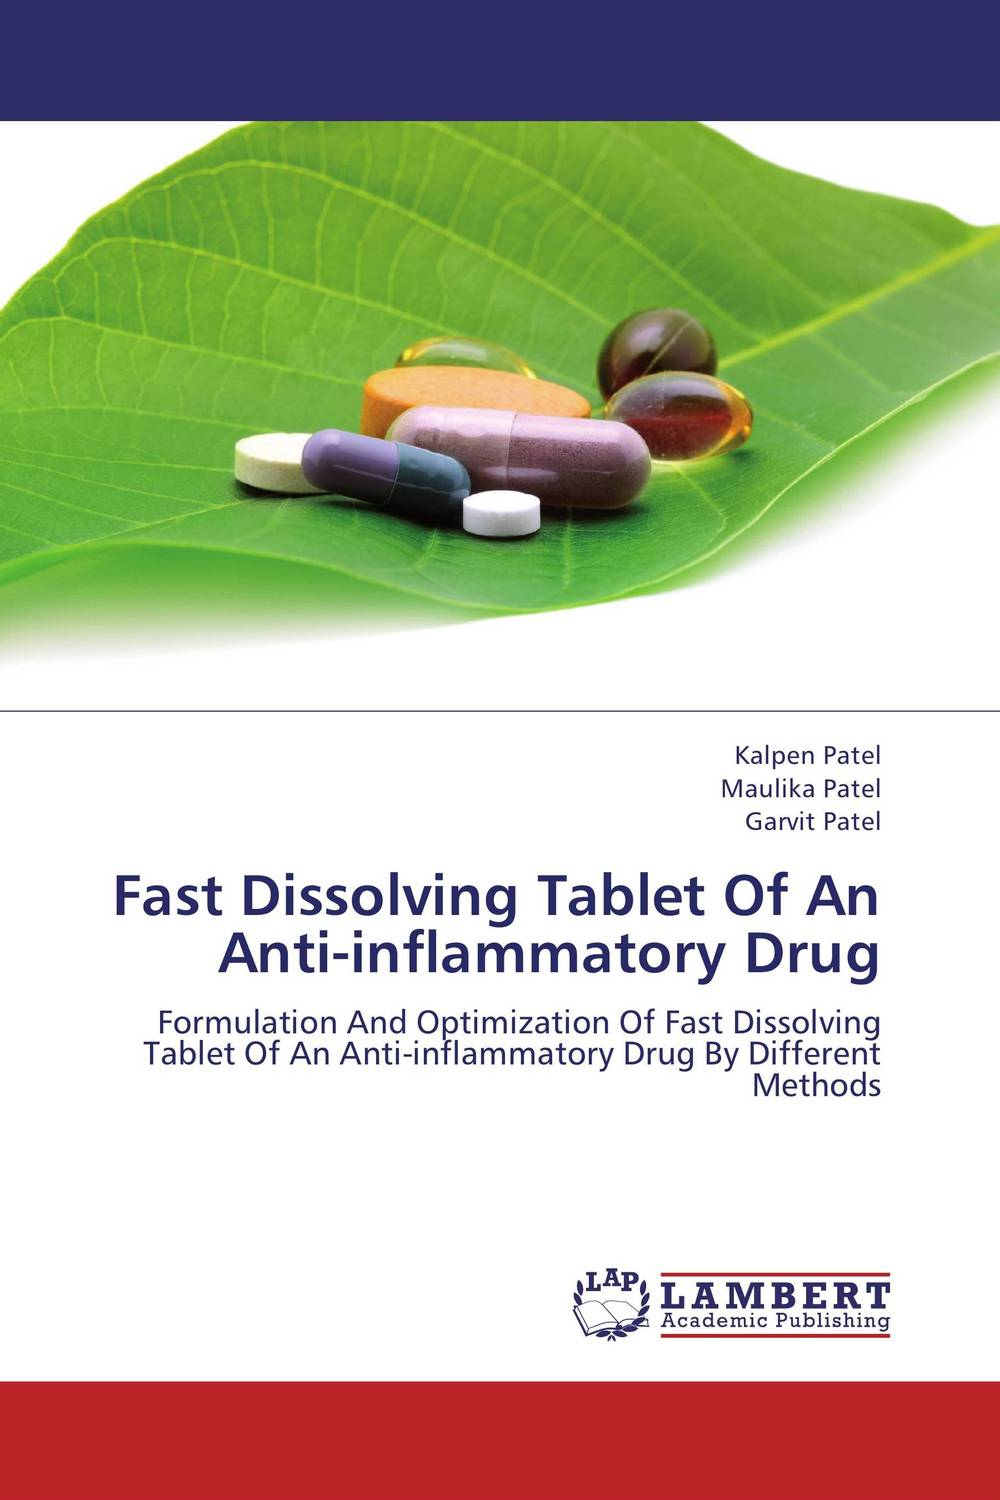 Fast Dissolving Tablet Of An Anti-inflammatory Drug amita yadav kamal singh rathore and geeta m patel formulation evaluation and optimization of mouth dissolving tablets